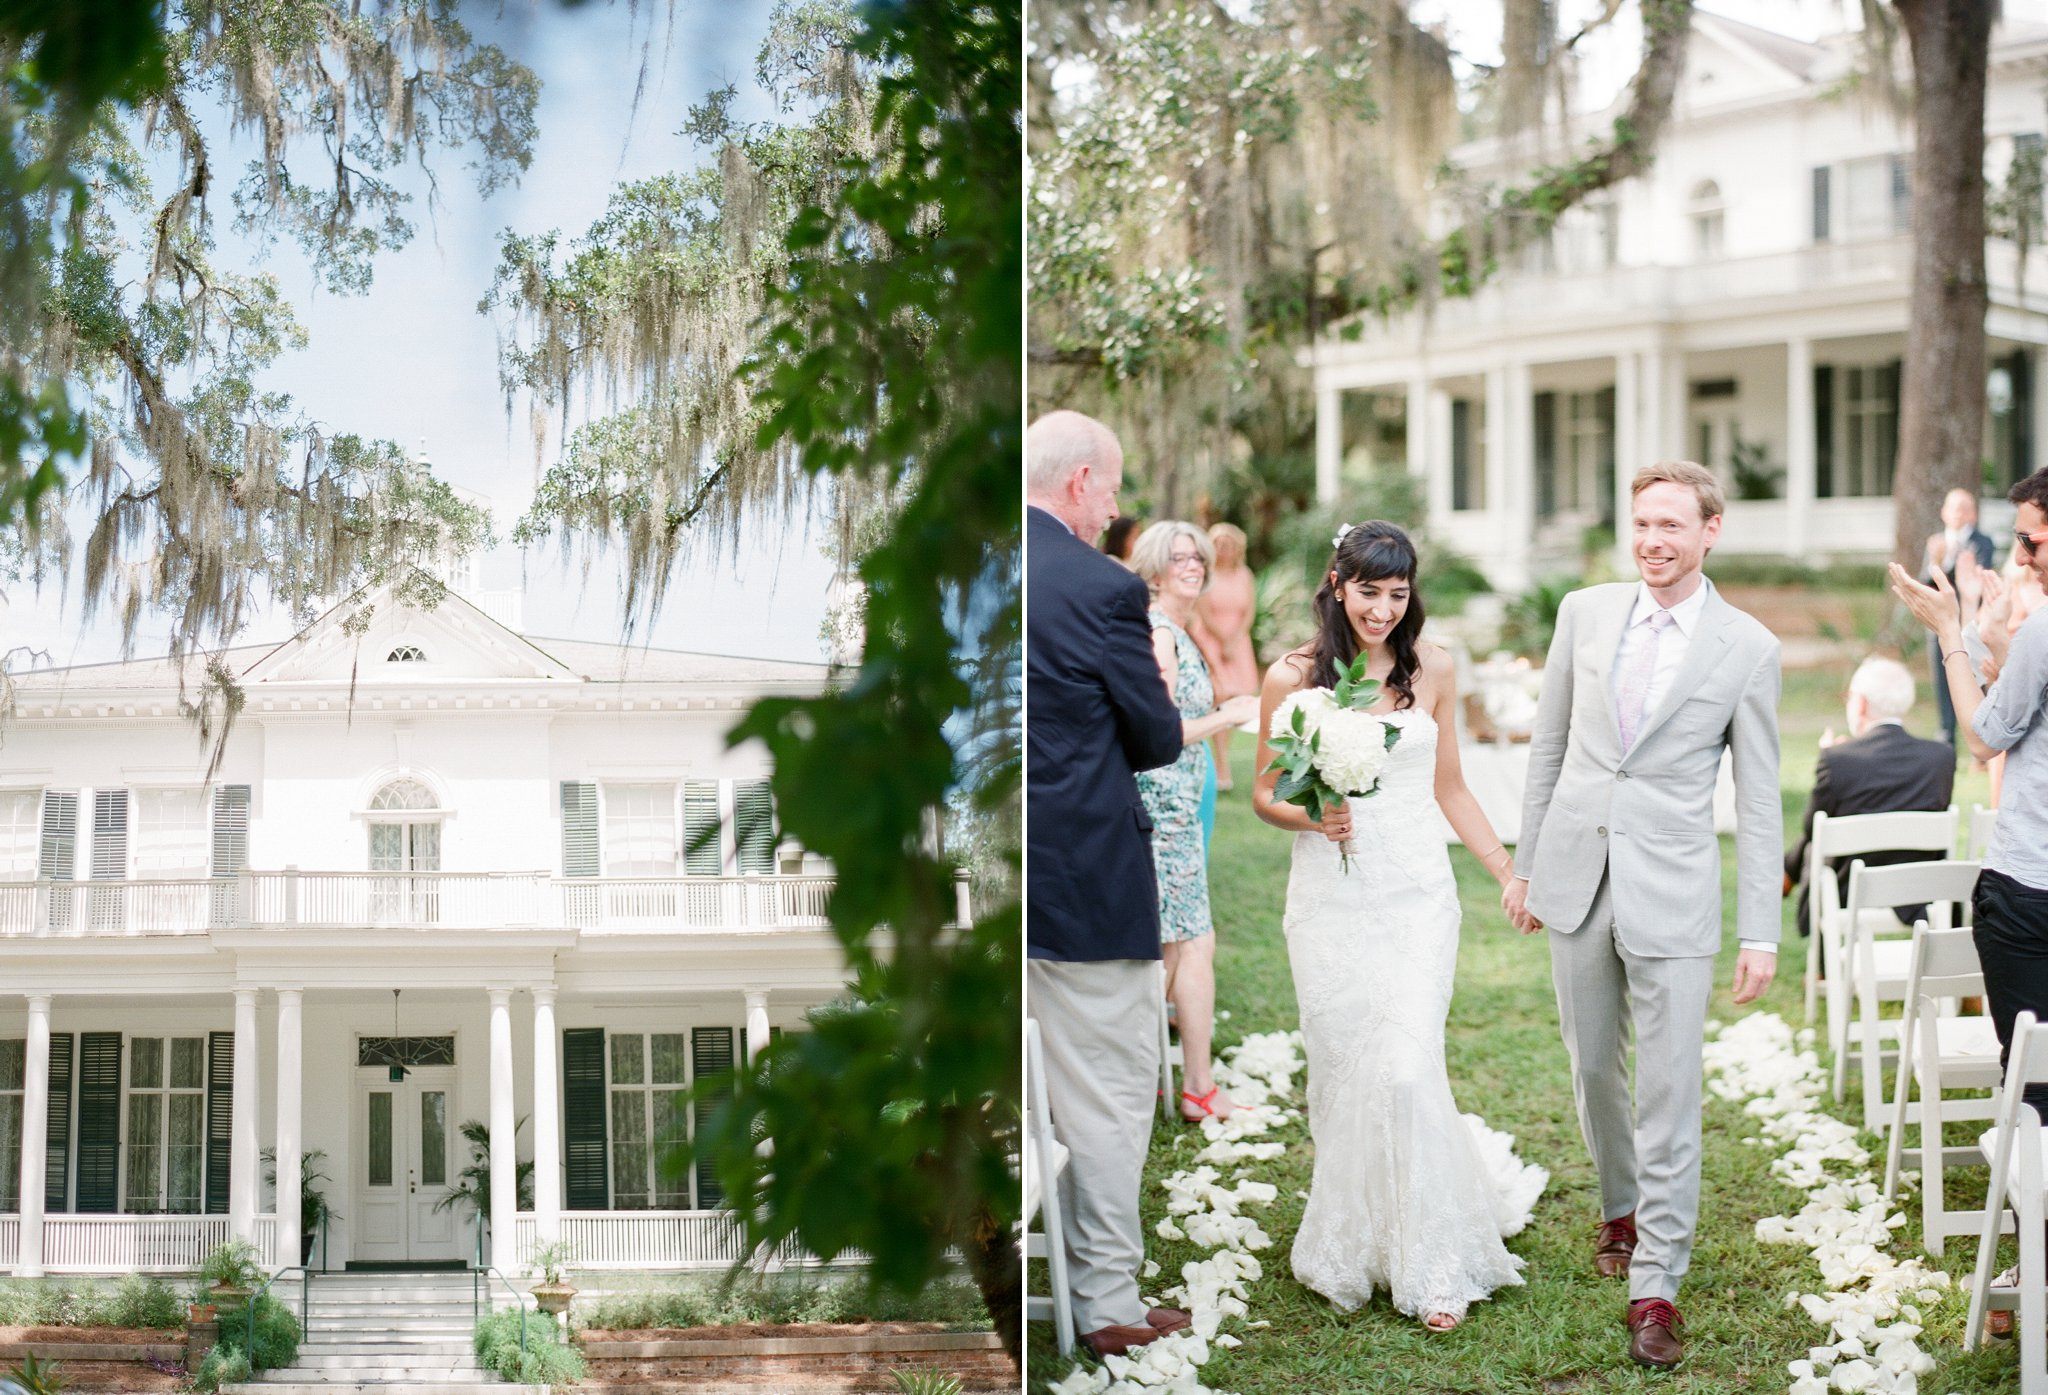 Persian-Jewish wedding goodwood wedding photographer tallahassee florida shannon griffin photography_0052.jpg